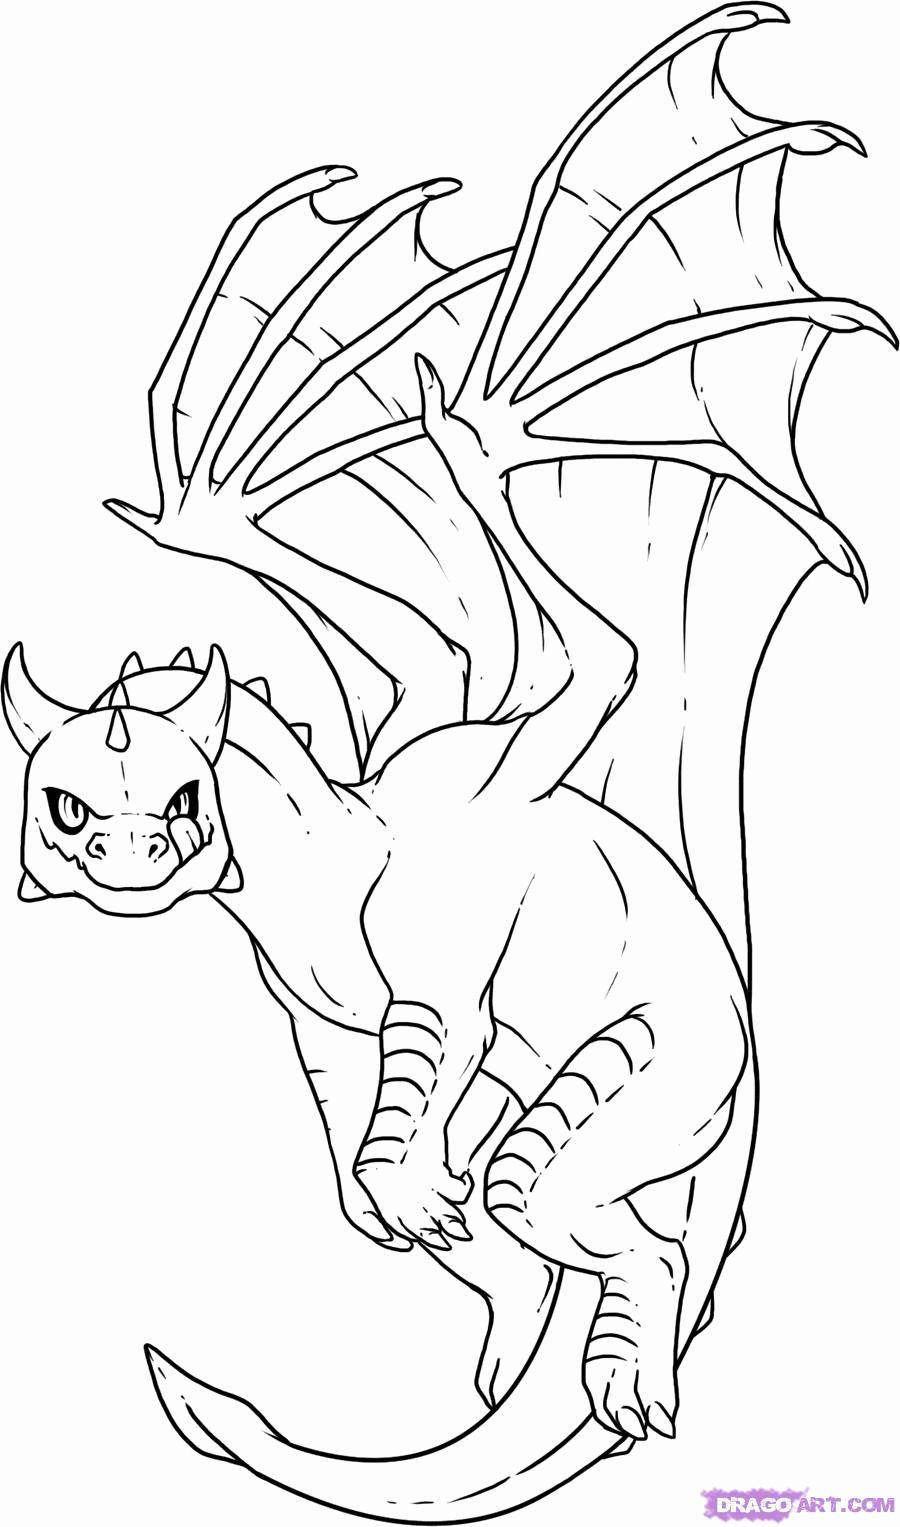 Wyvern Dragon Coloring Pages For Kids Dragon Coloring Page Giraffe Coloring Pages Dinosaur Coloring Pages